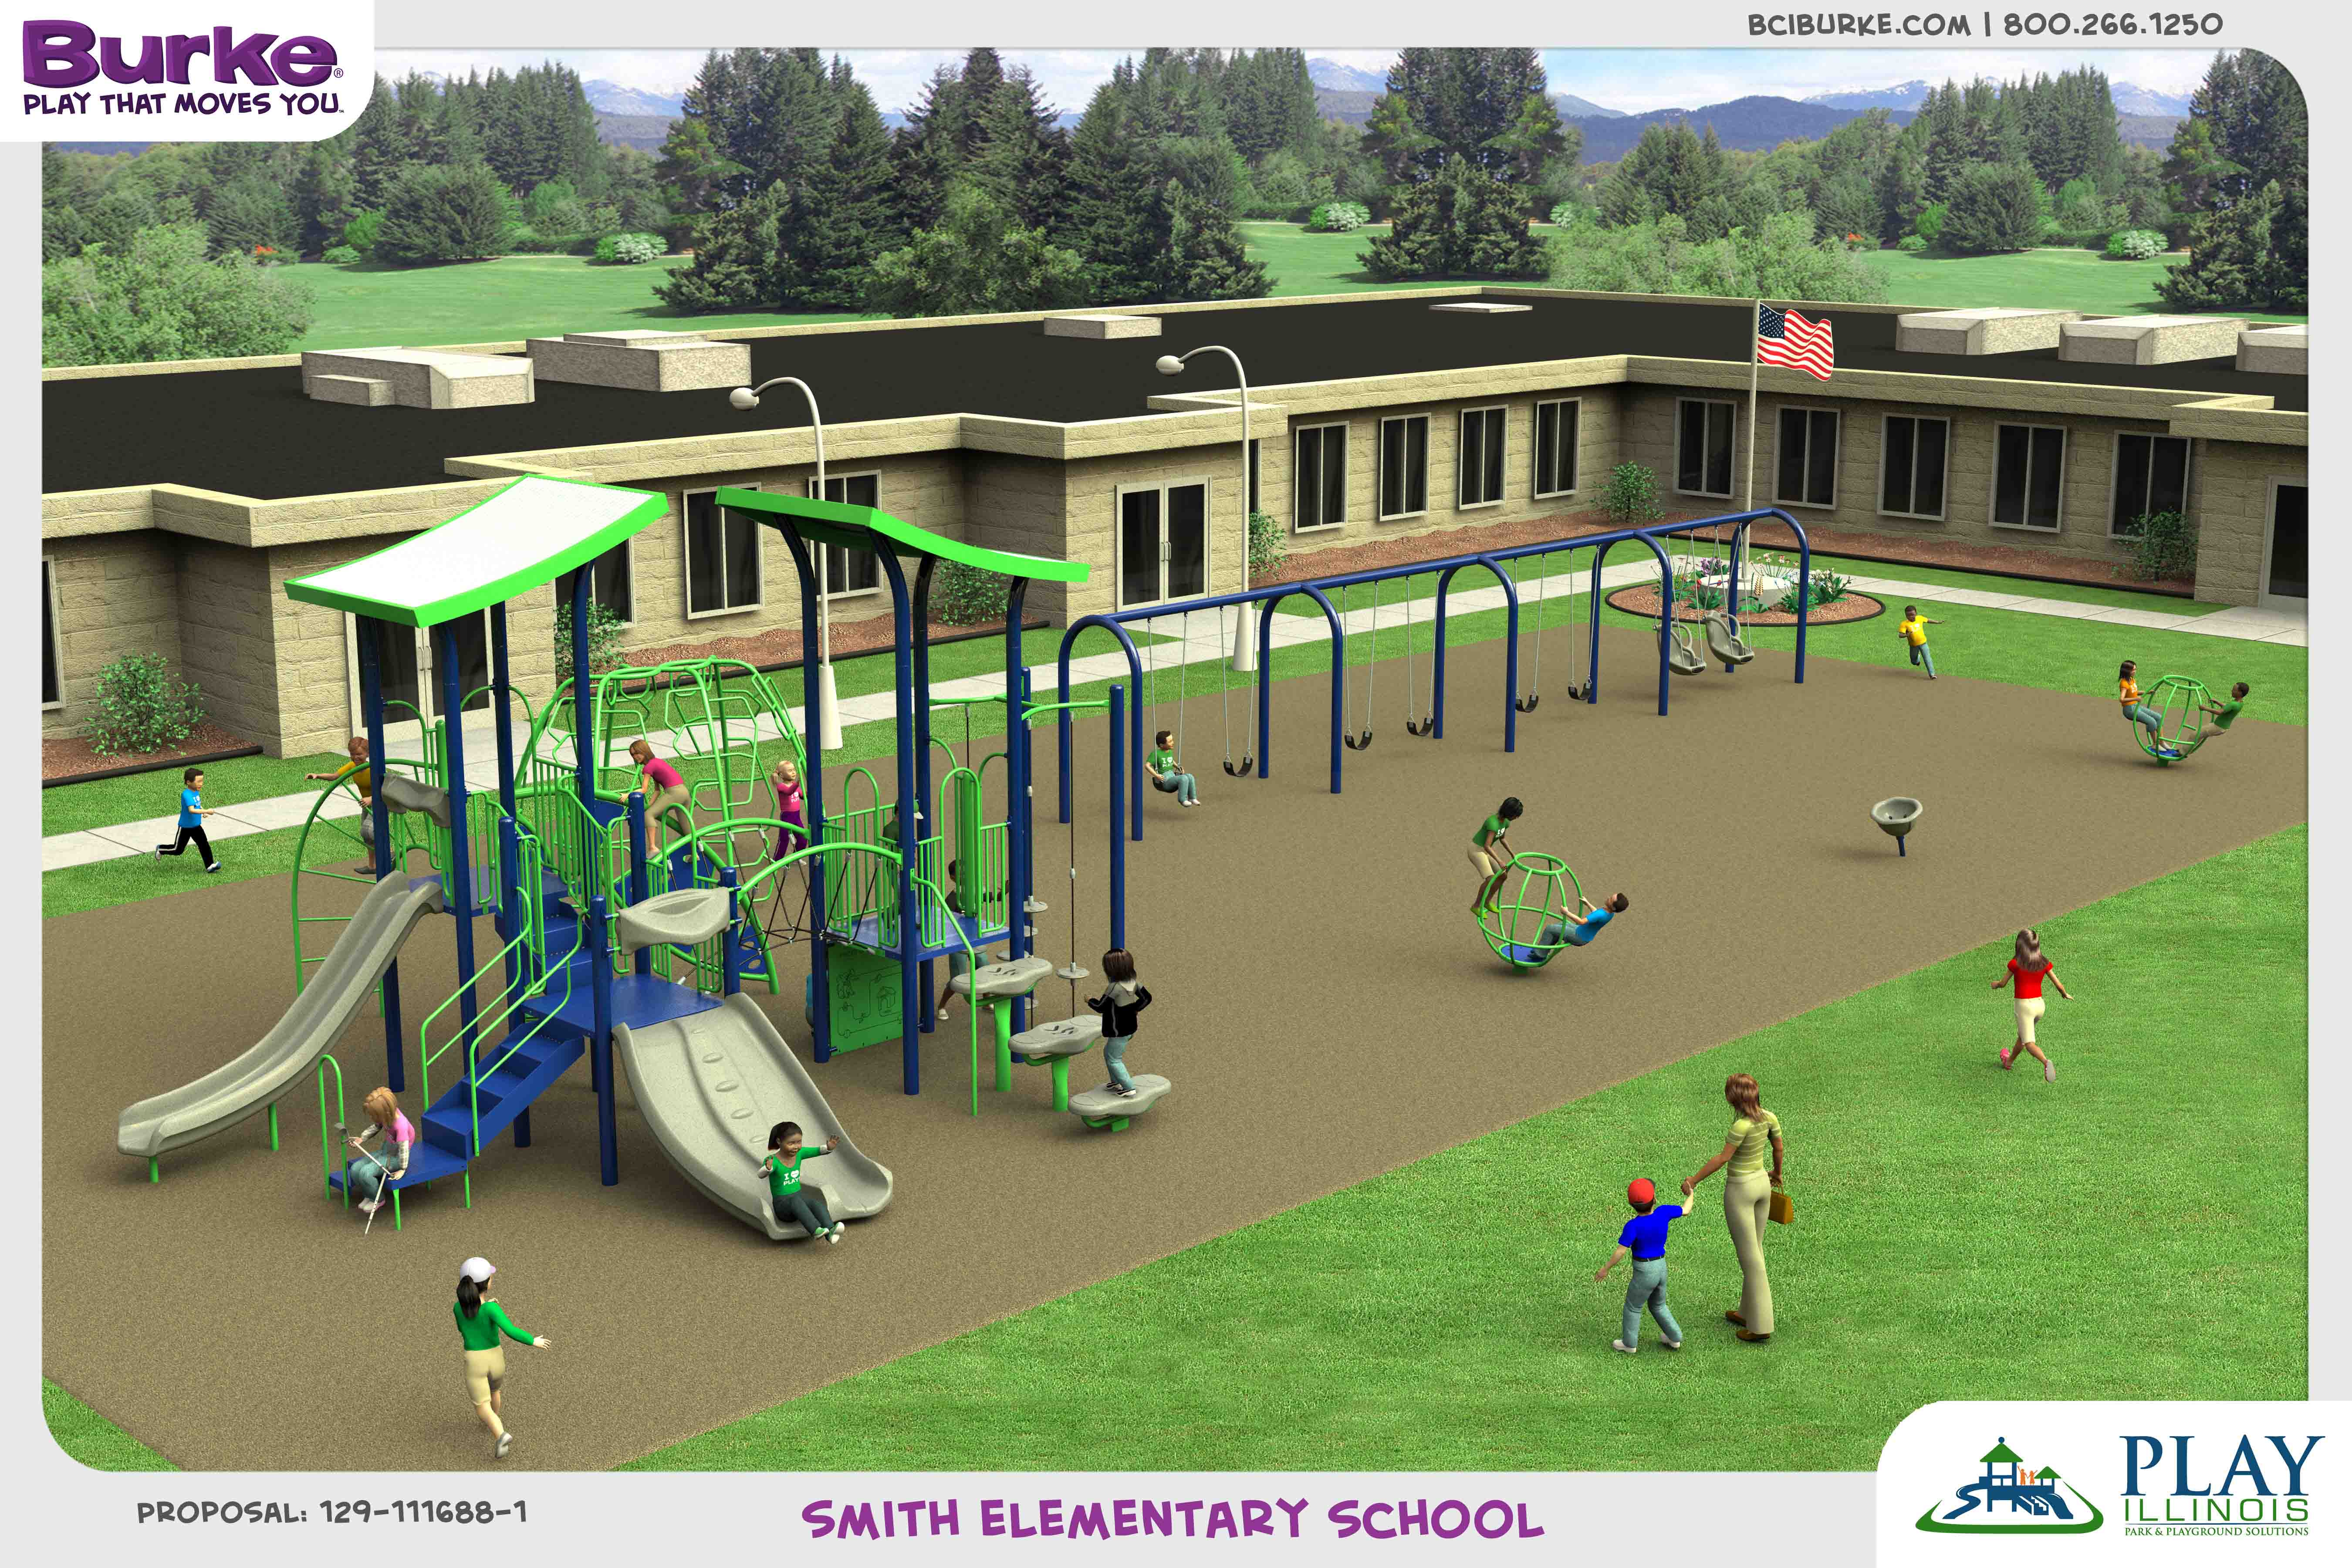 129-111688-1A_MC_SmithElementary dream build play experience accessible playgrounds